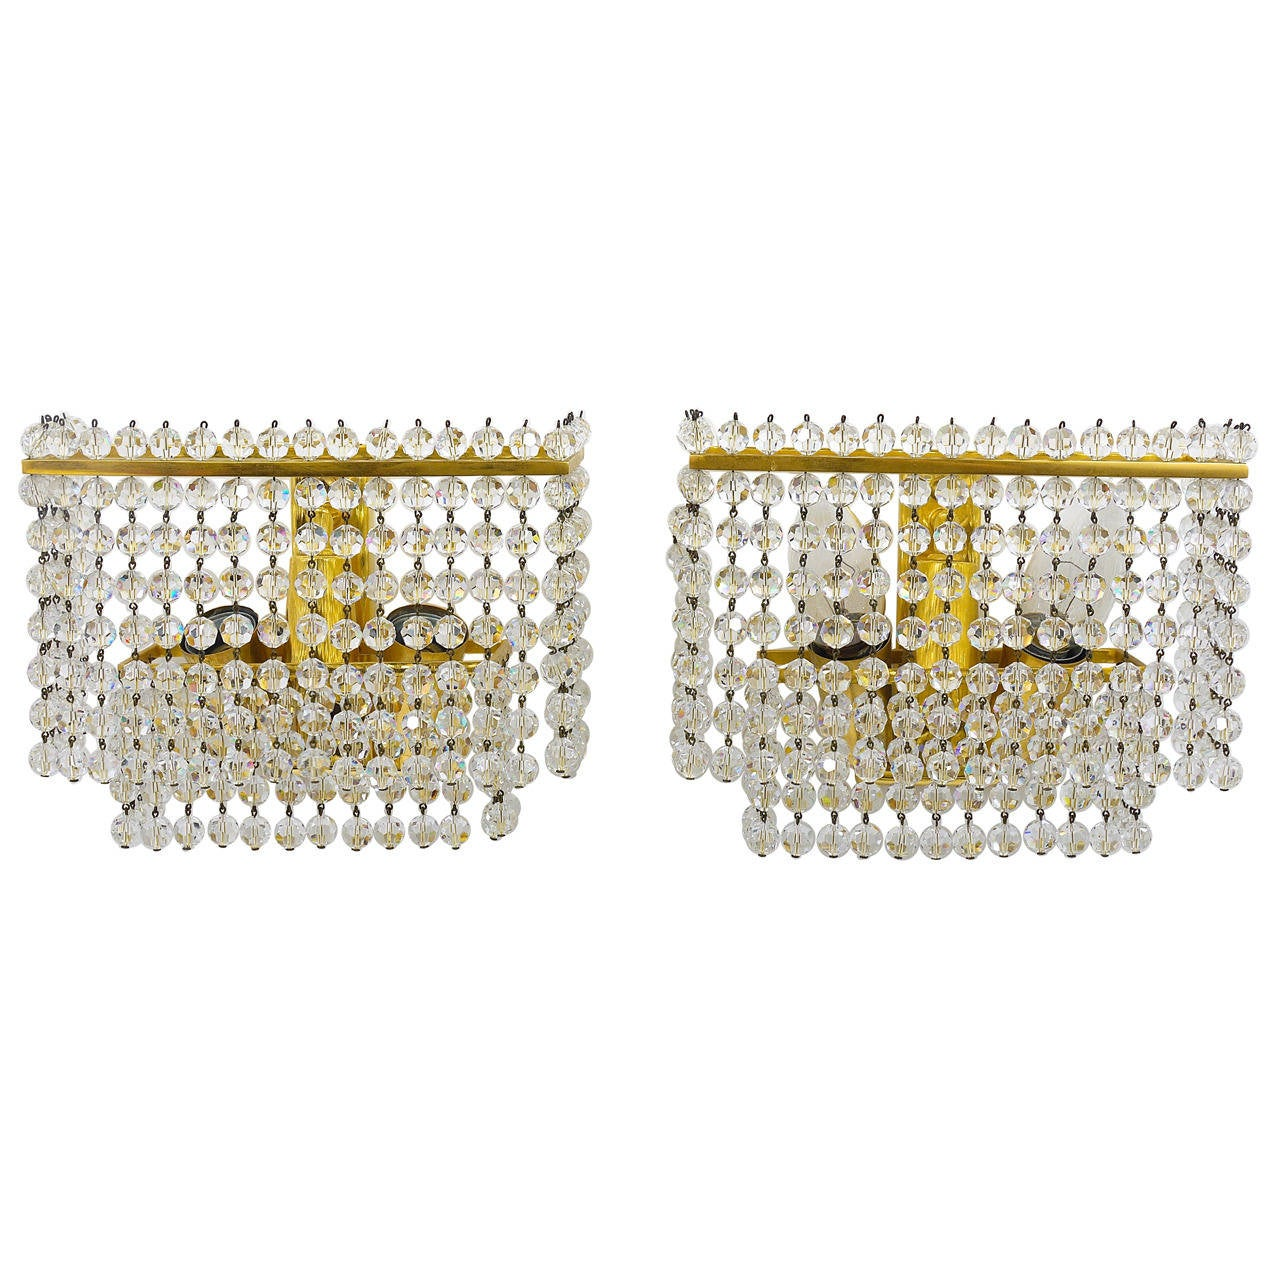 Pair of Lobmeyr Square Gold-Plated Brass Sconces with Hand-Cut Crystals, 1970s